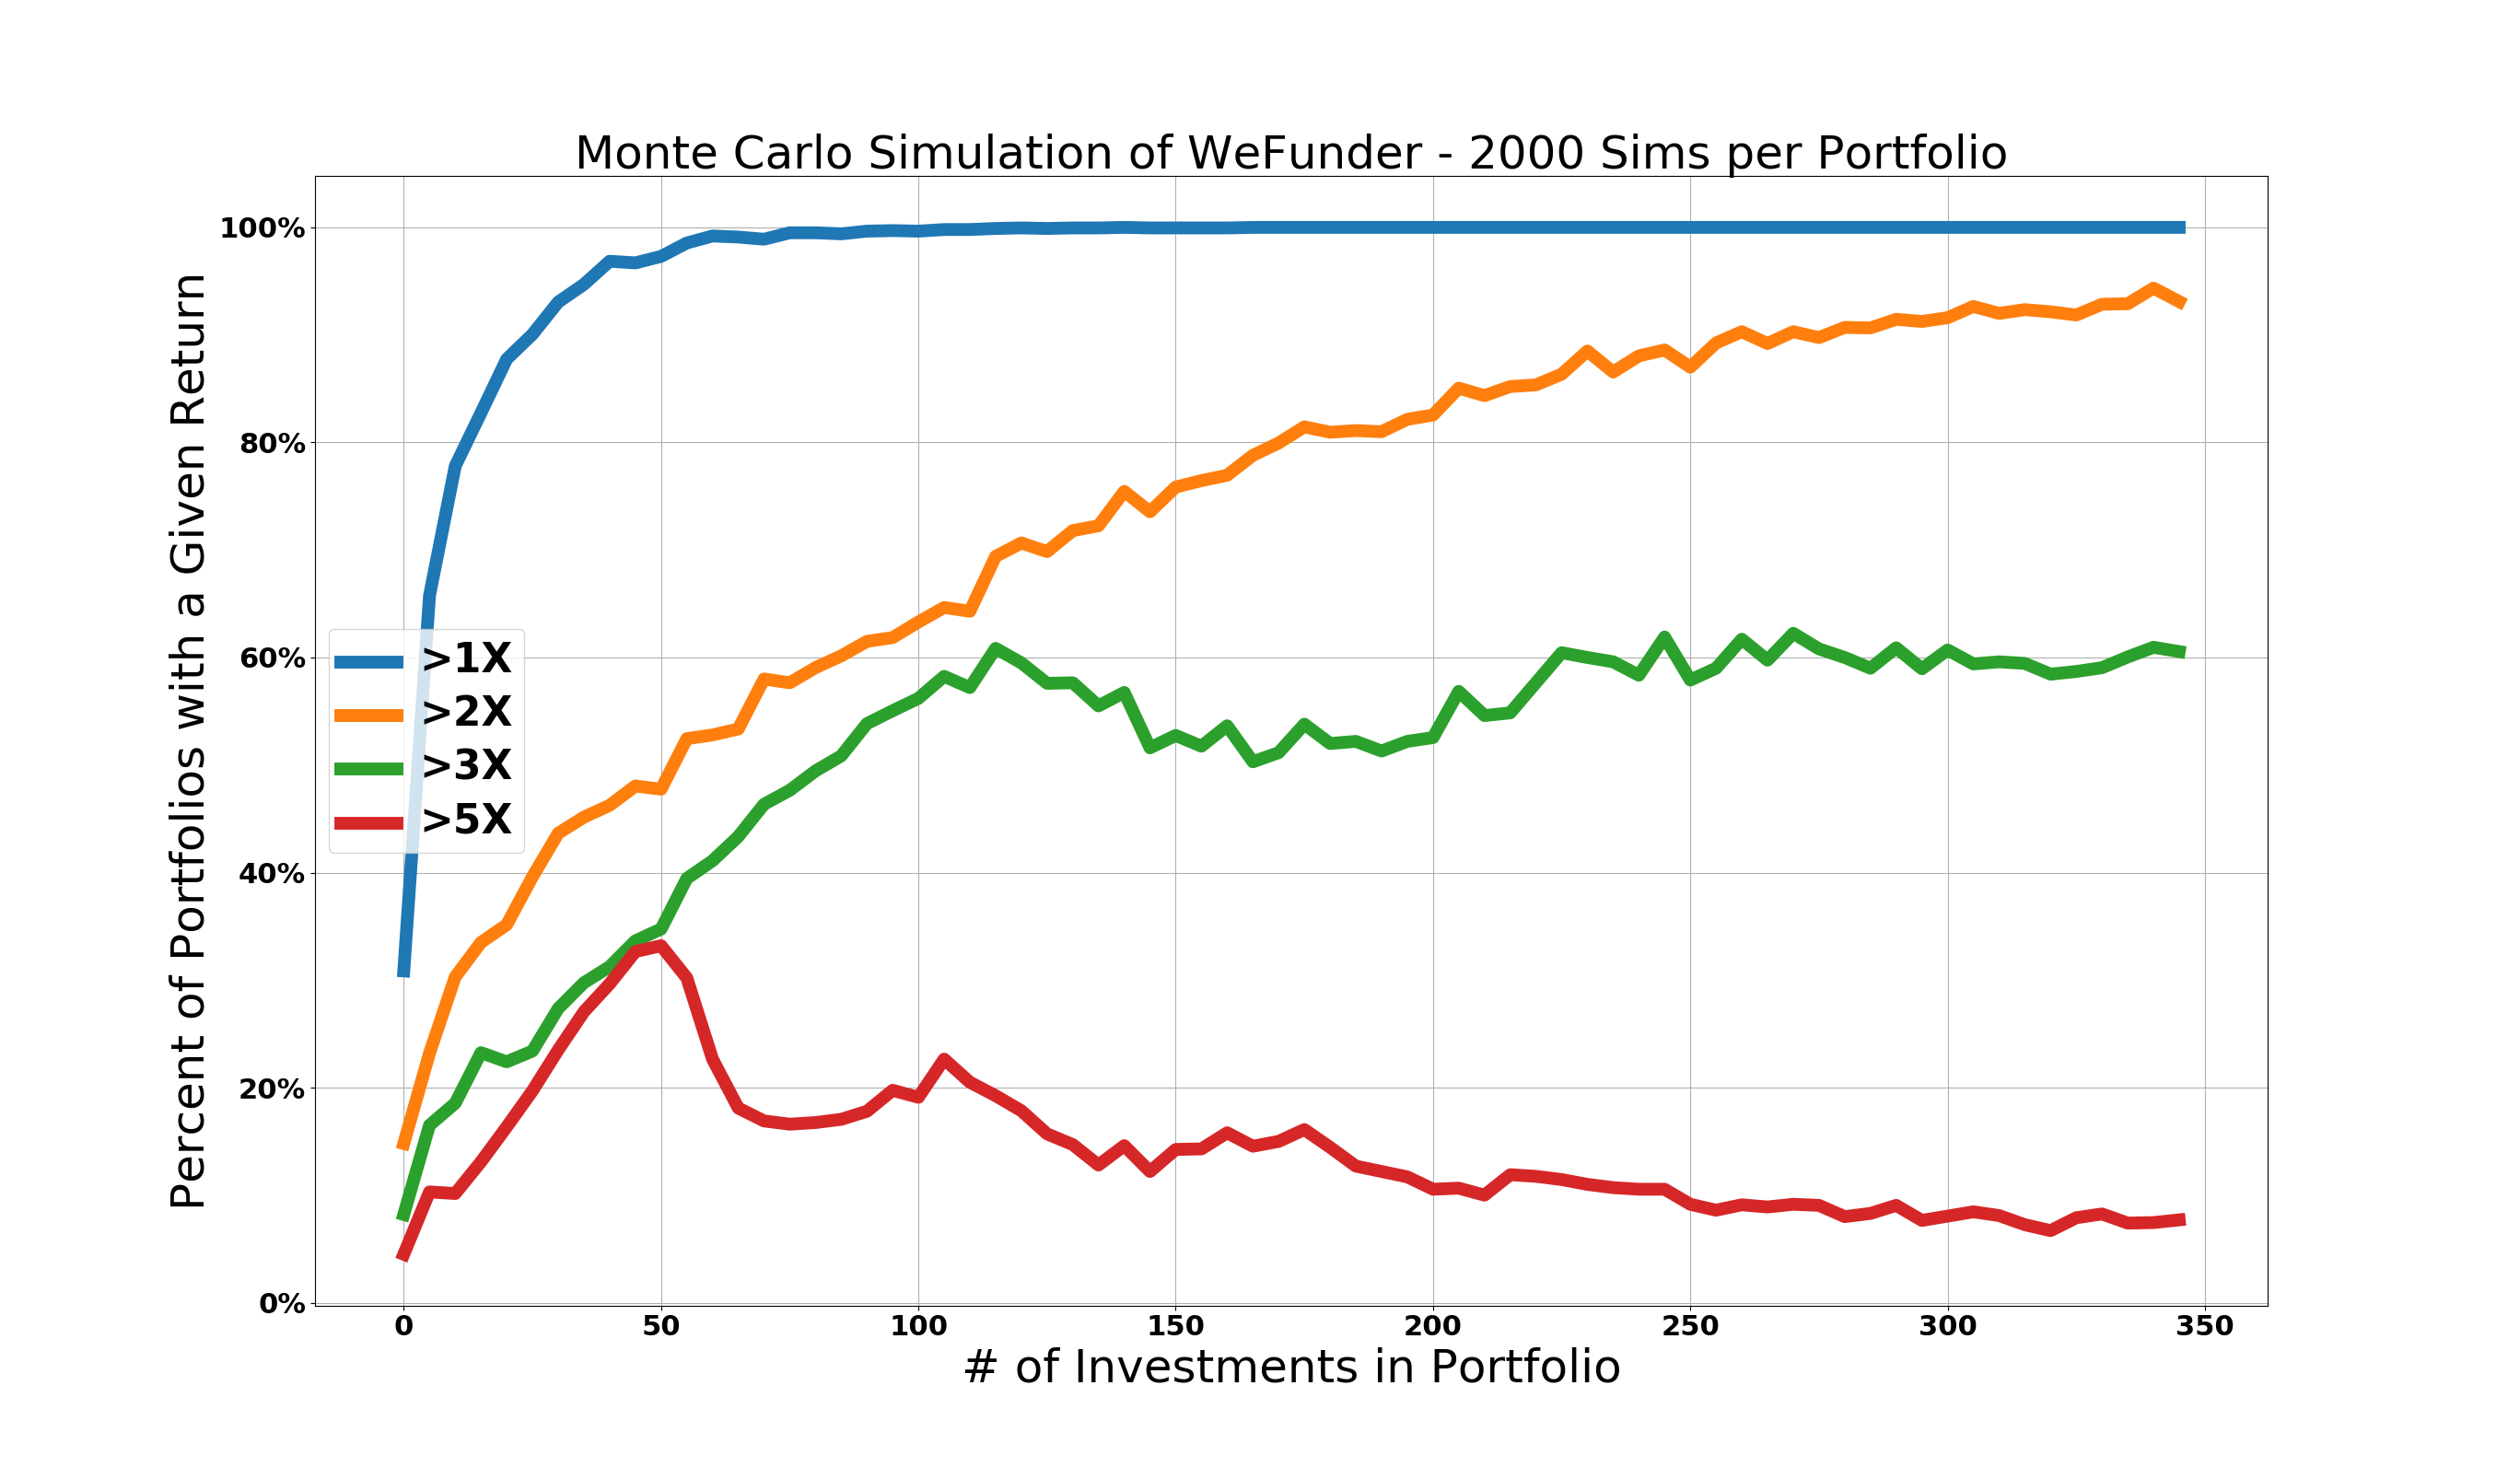 WeFunder Monte Carlo Returns vs Investments